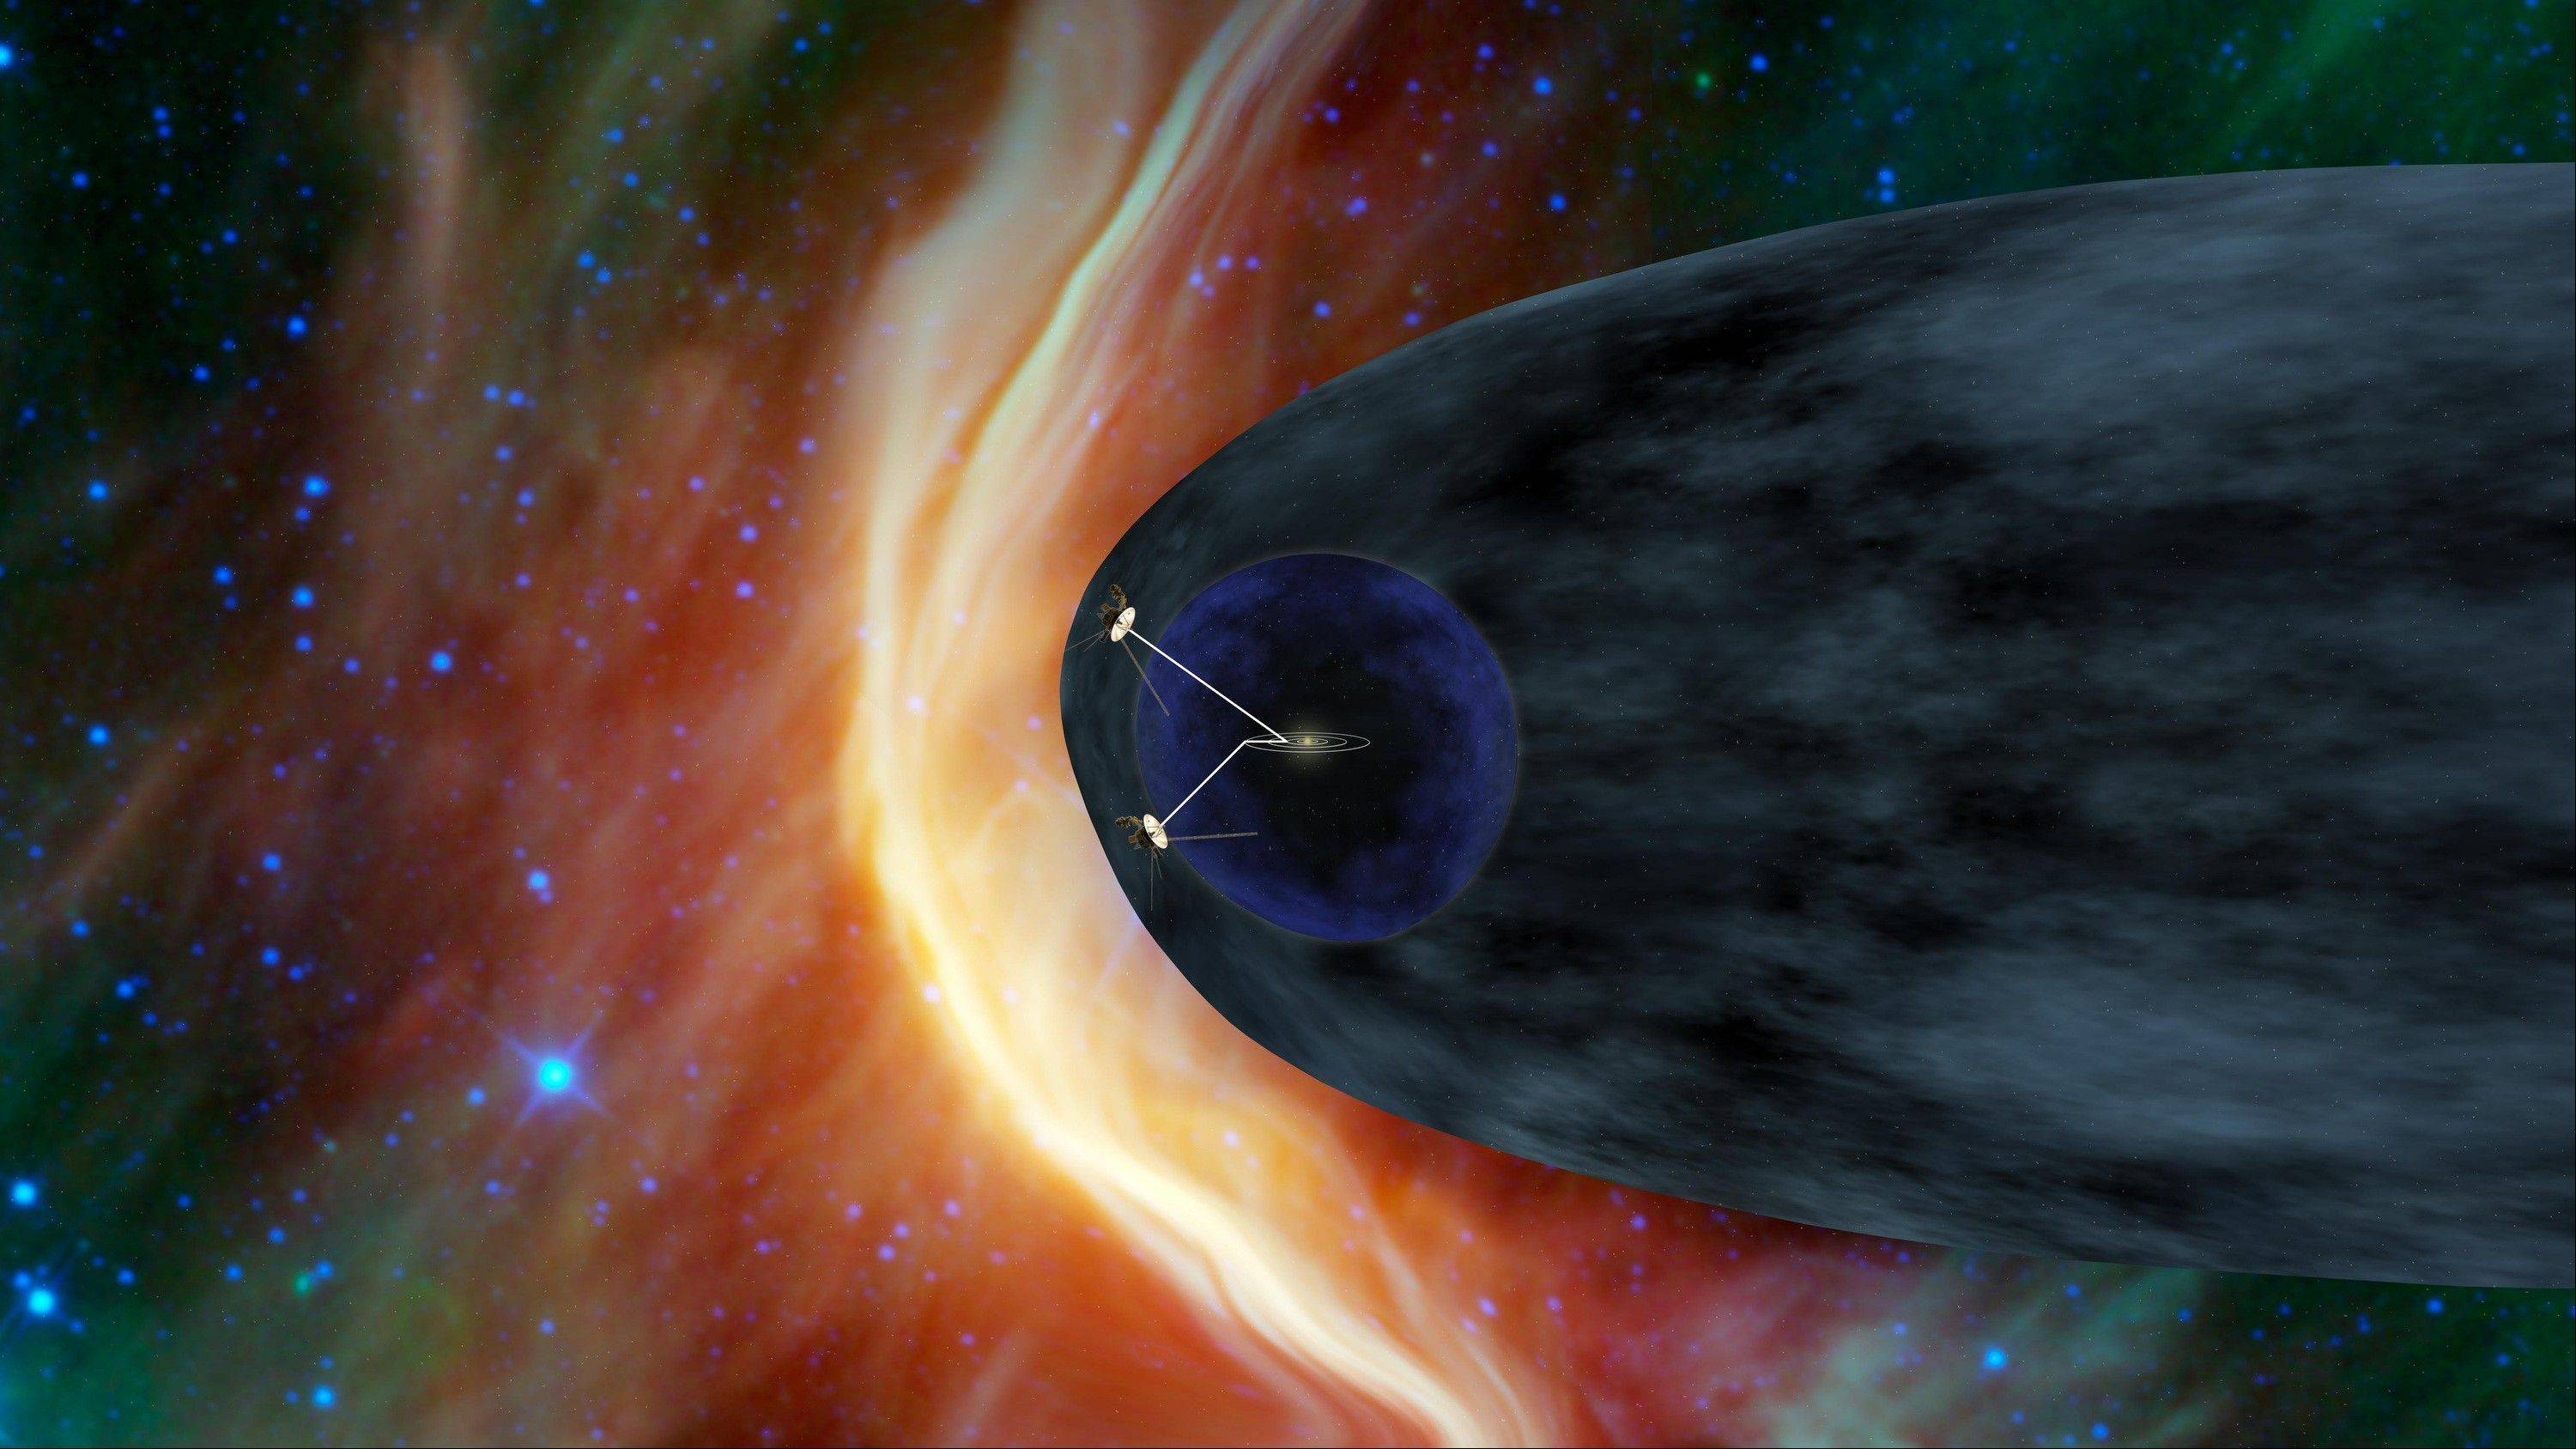 This artist's rendering provided by NASA shows This image shows the Voyager spacecraft barreling away from the sun. Launched in 1977, the twin spacecraft are exploring the edge of the solar system. Voyager 1 is poised to cross into interstellar space.